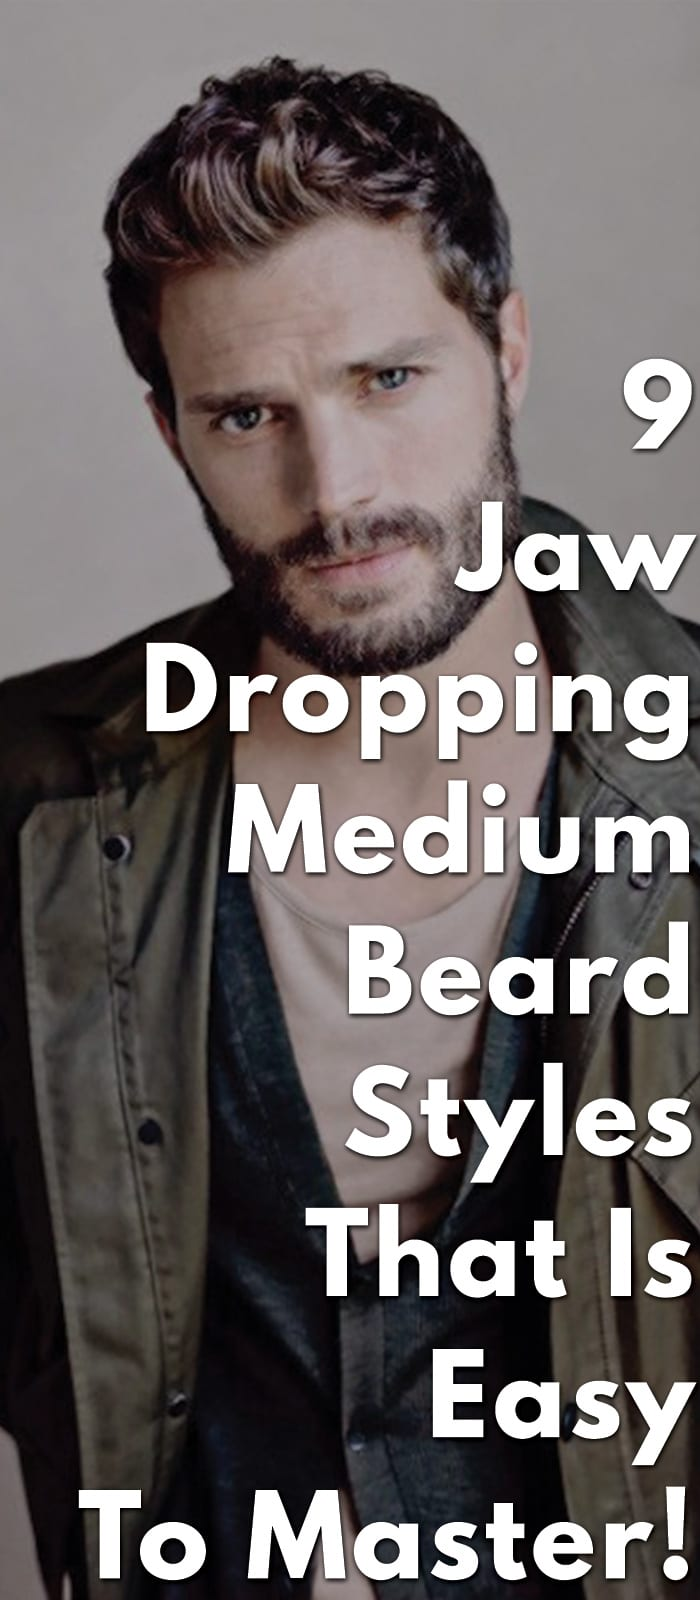 9-Jaw-Dropping-Medium-Beard-Styles-That-Is-Easy-To-Master!.